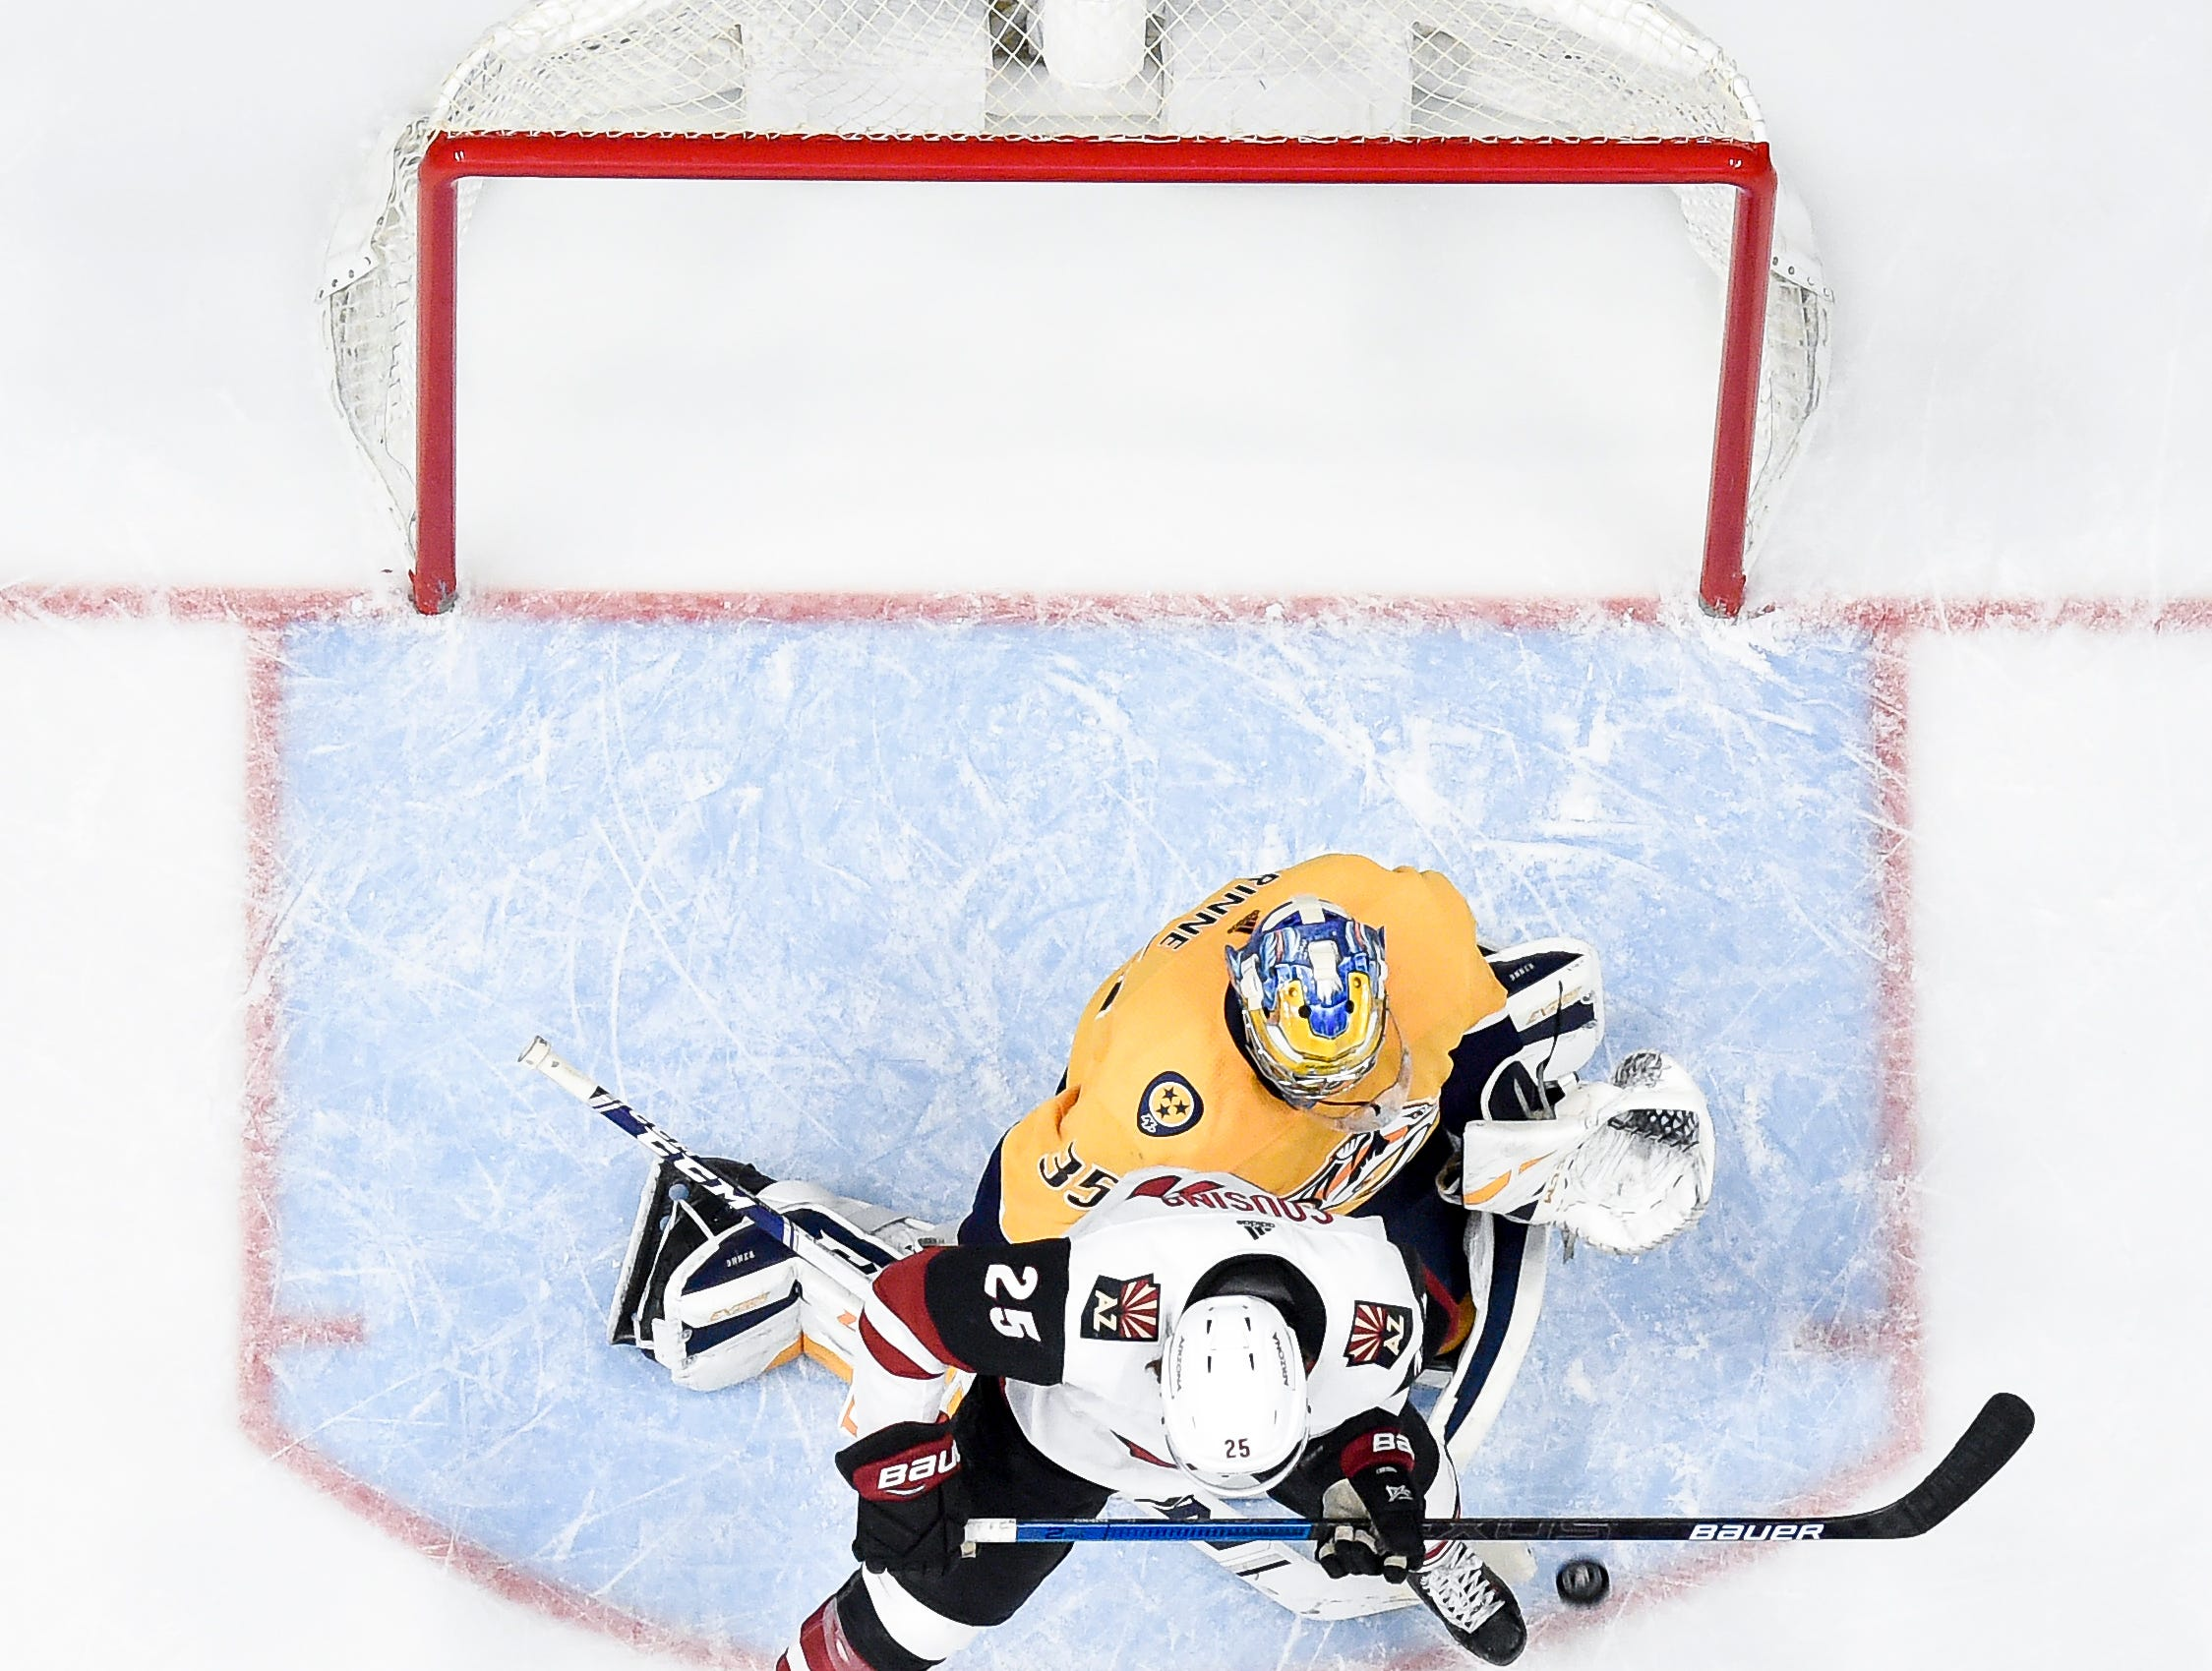 Nashville Predators goaltender Pekka Rinne (35) defends against Arizona Coyotes center Nick Cousins (25) during the third period at Bridgestone Arena in Nashville, Tenn., Tuesday, Feb. 5, 2019.